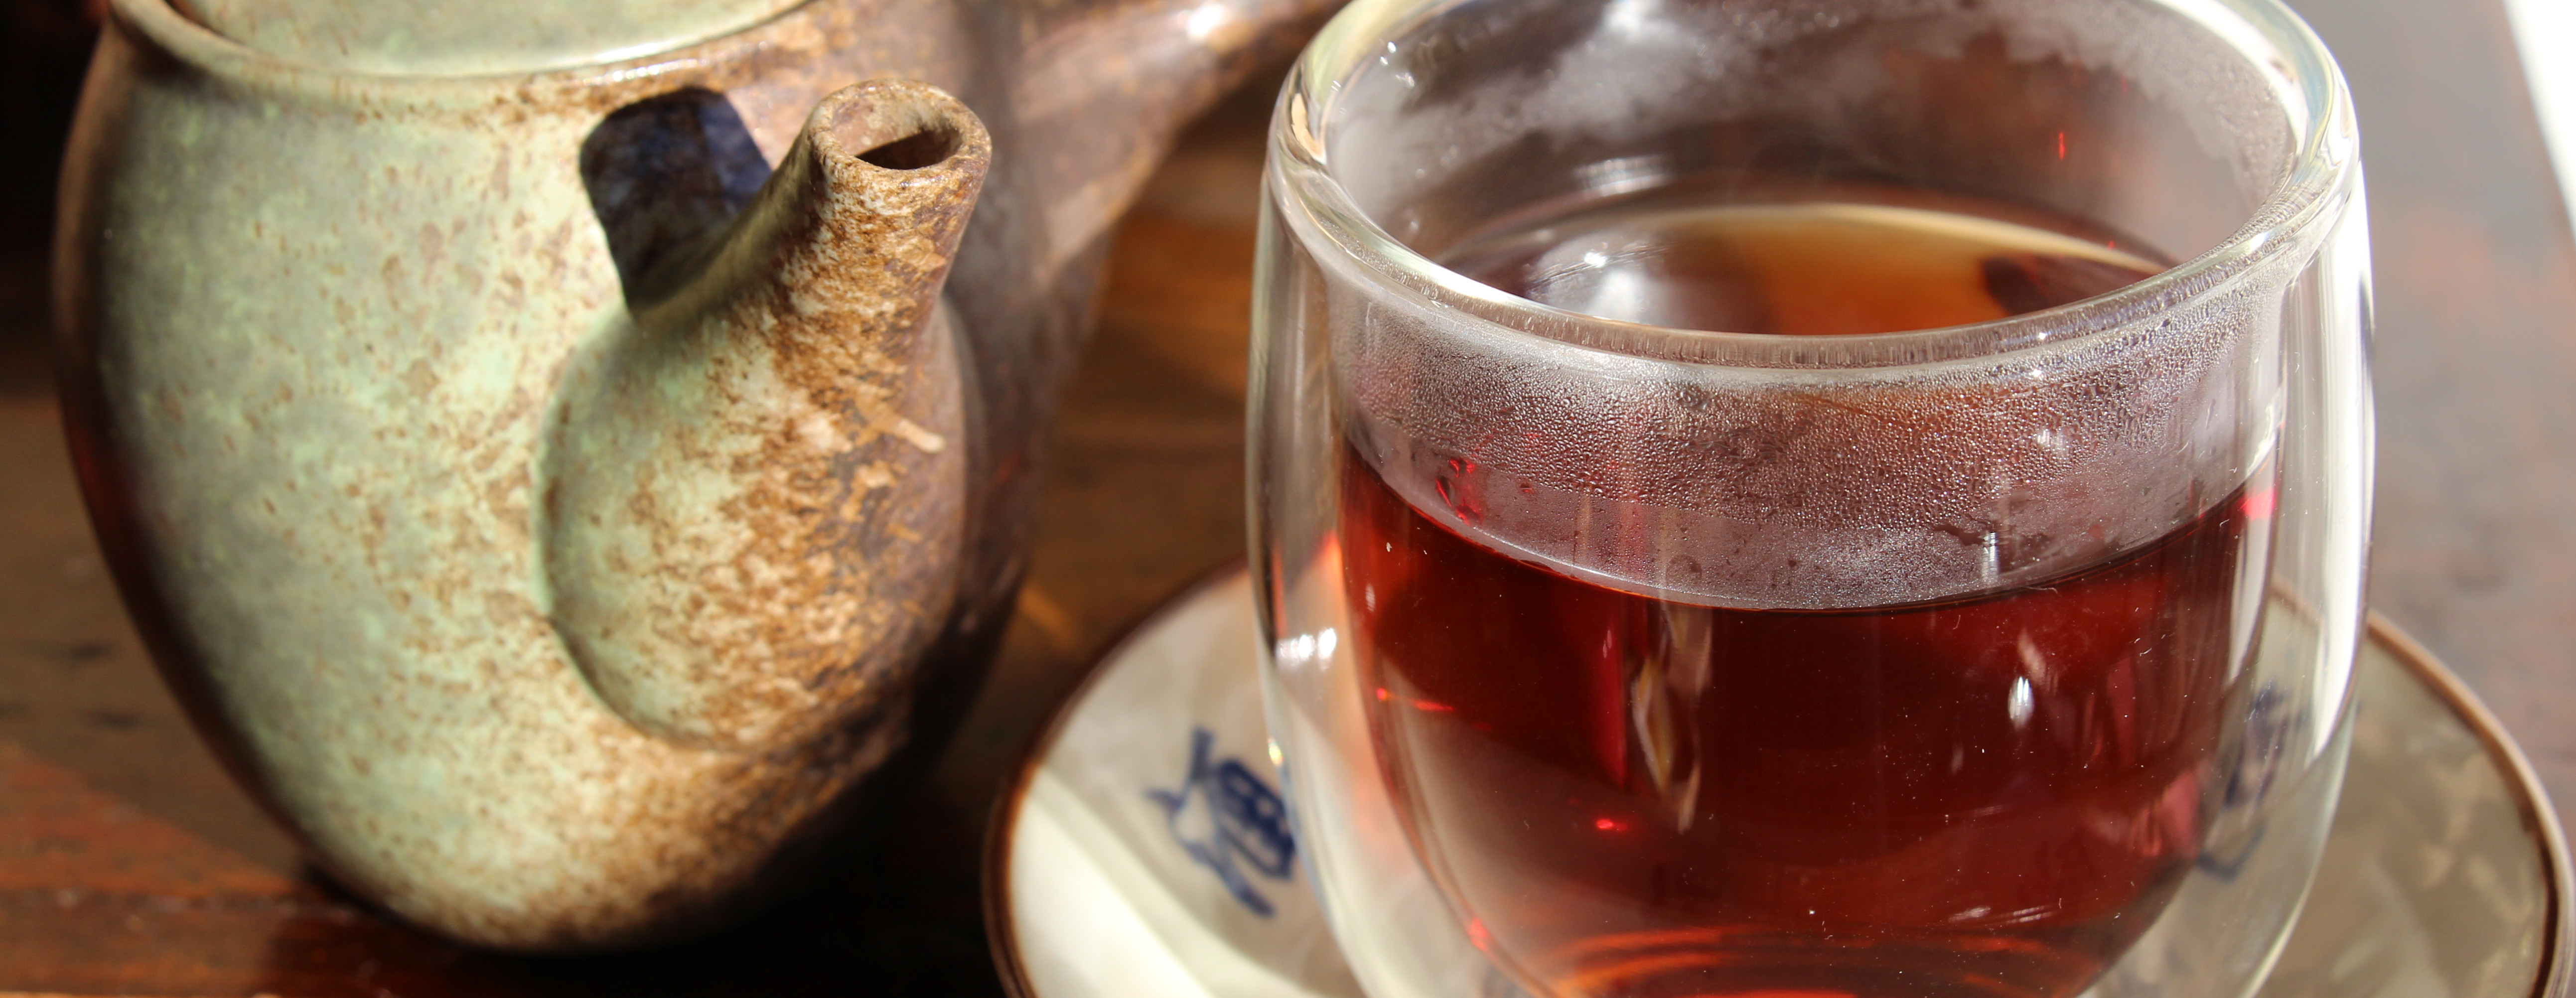 The healing properties of Puer tea are reality or fiction